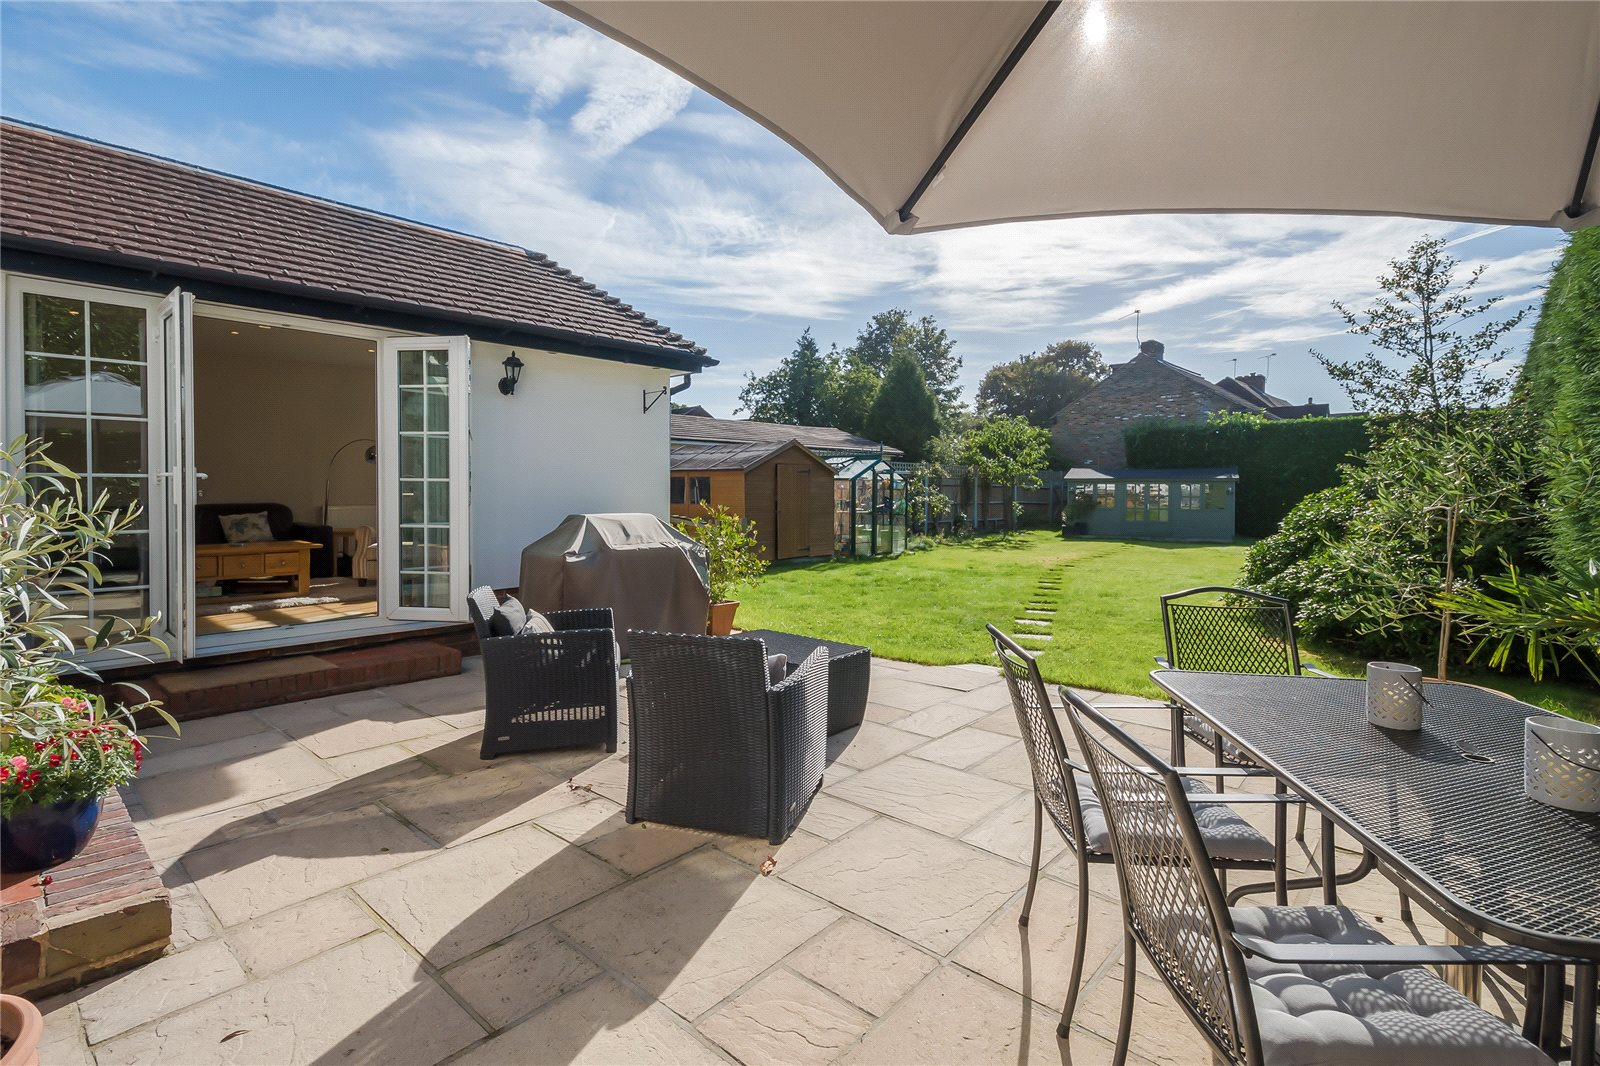 Additional photo for property listing at Priory Road, Chalfont St Peter, Buckinghamshire, SL9 Chalfont St Peter, Англия